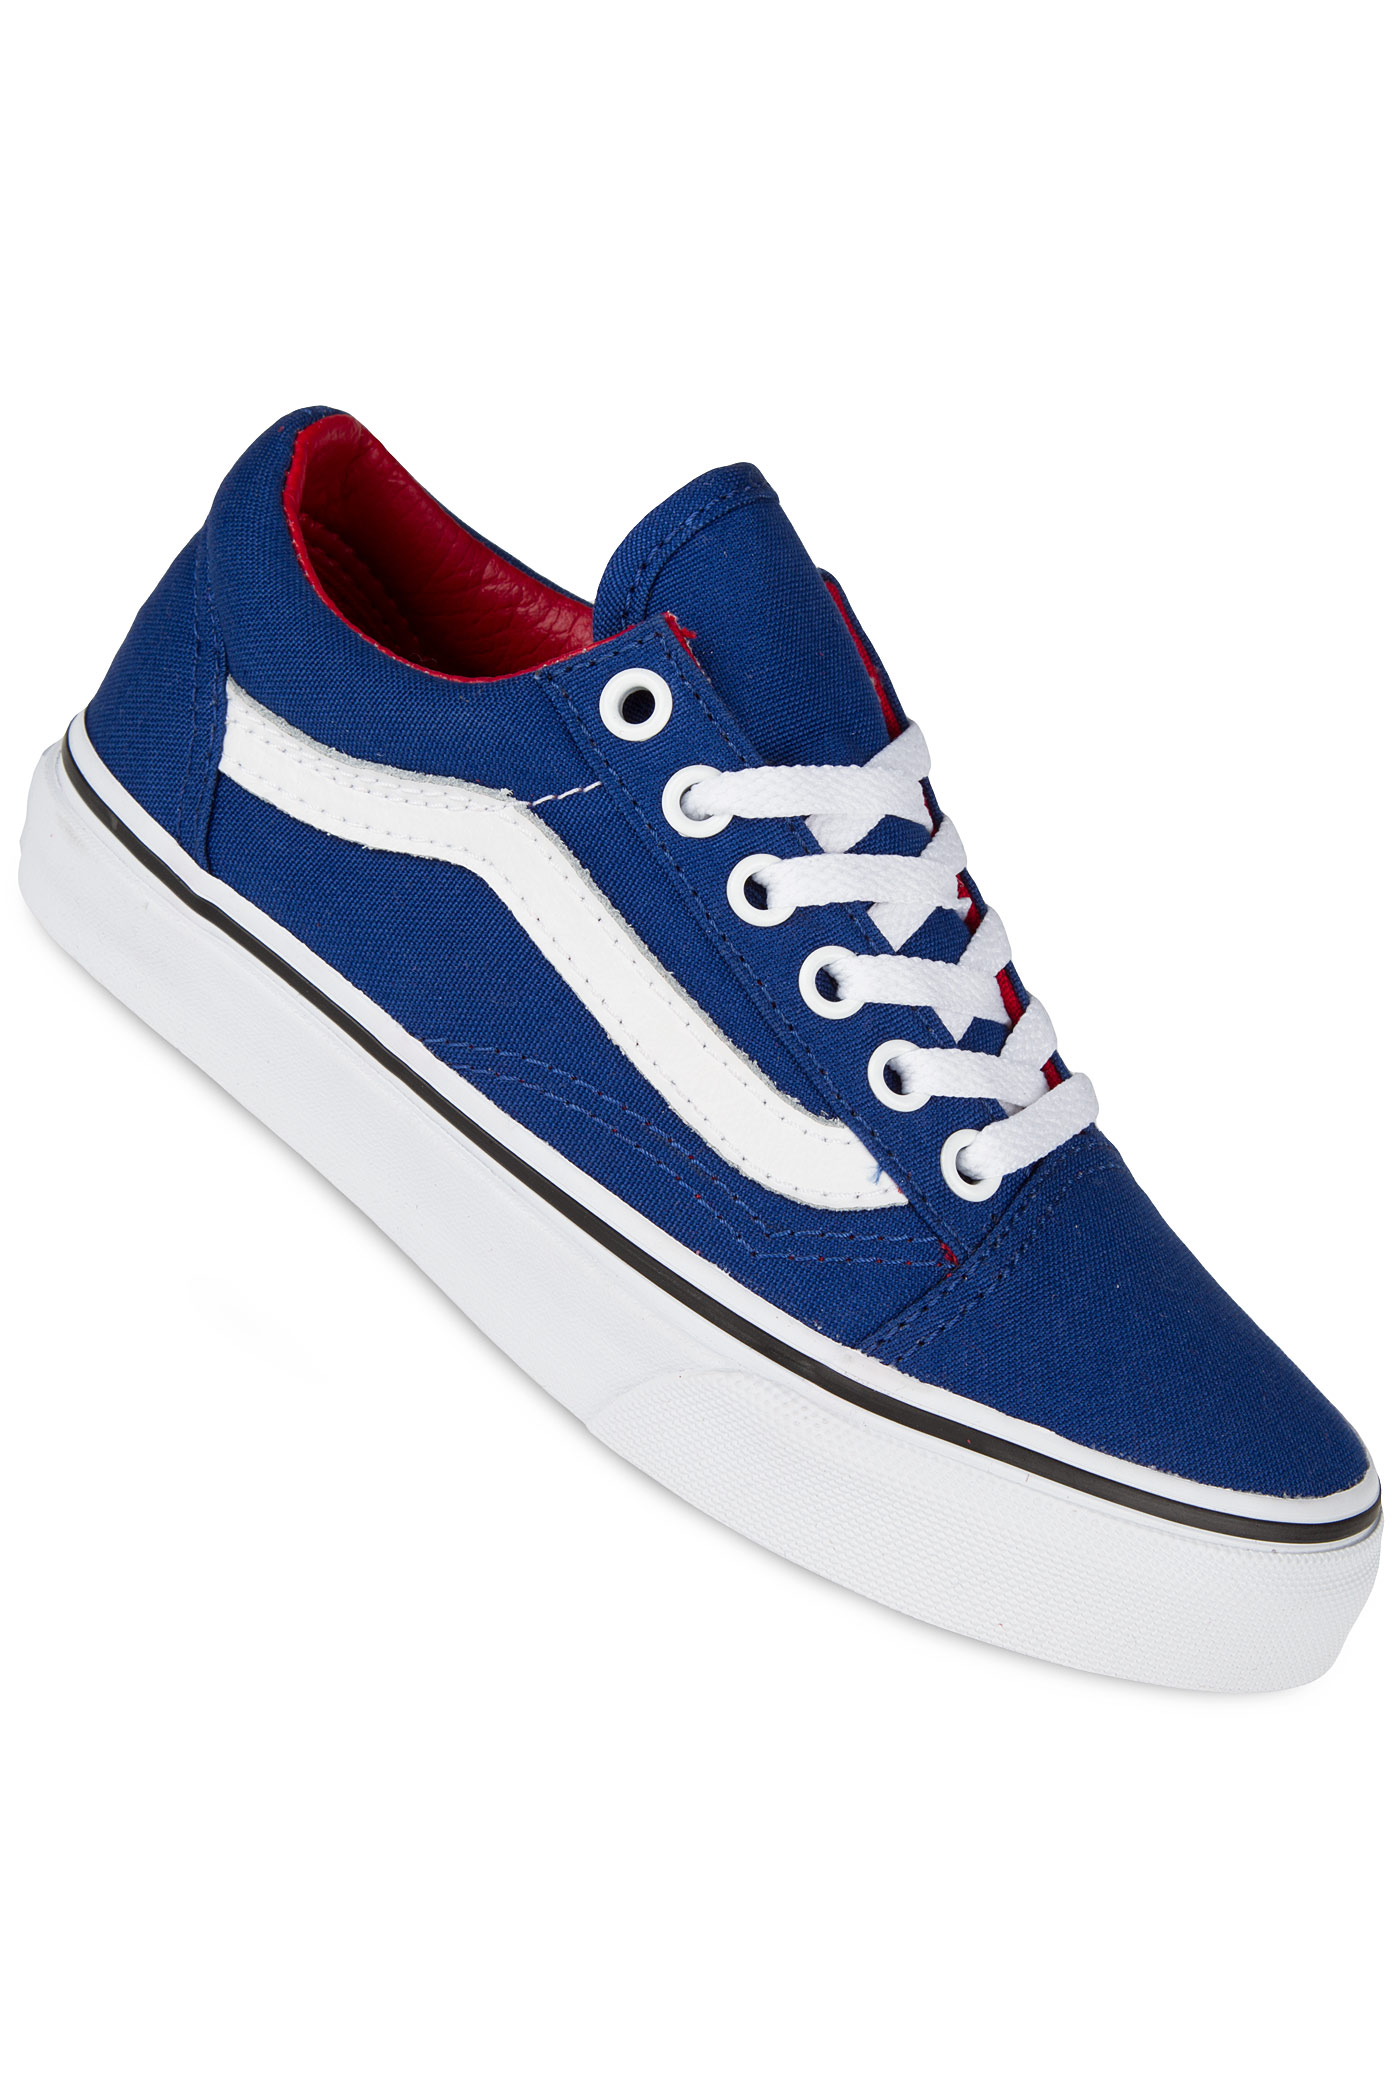 vans old skool canvas shoe kids true blue racing red buy. Black Bedroom Furniture Sets. Home Design Ideas